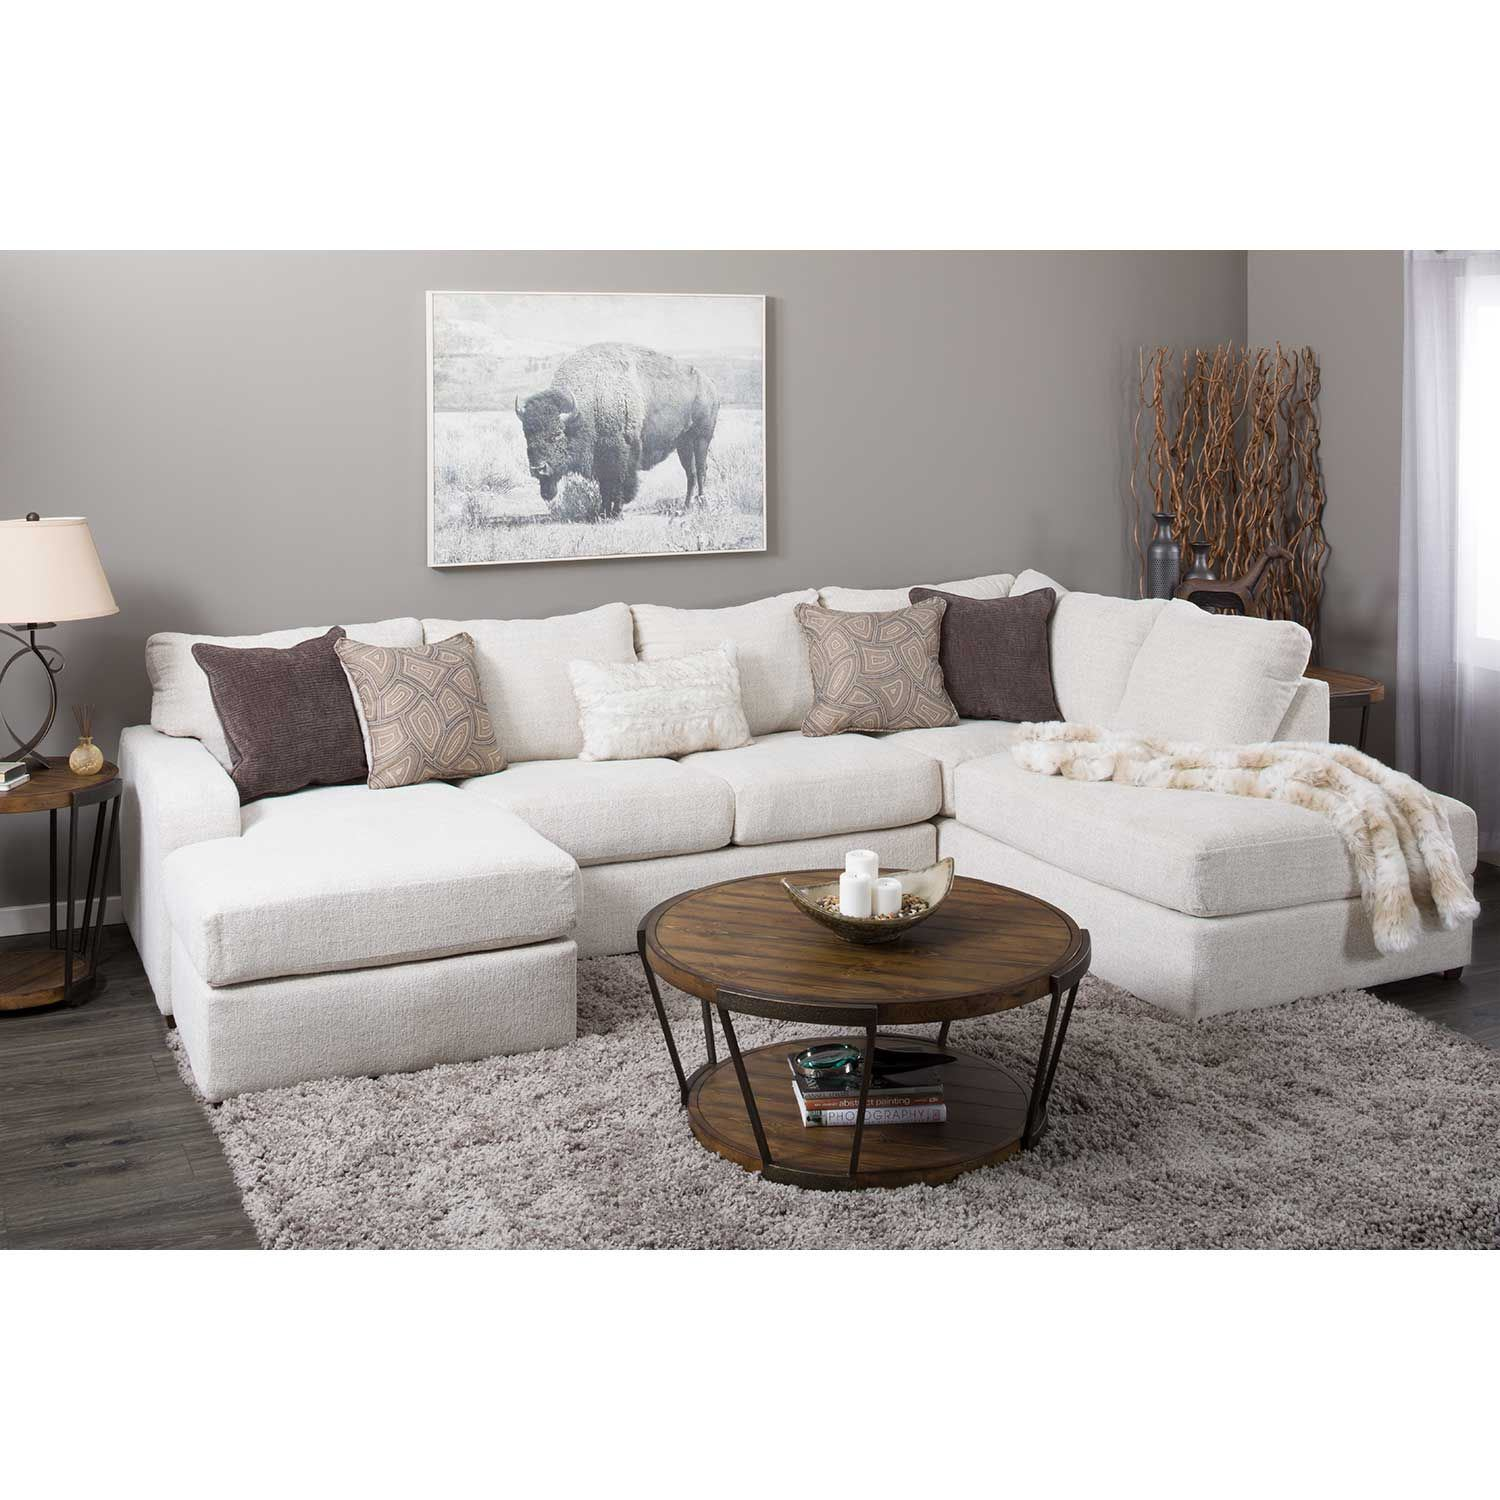 Picture of Amplify Beige 2 Piece LAF Sofa Chaise Sectional